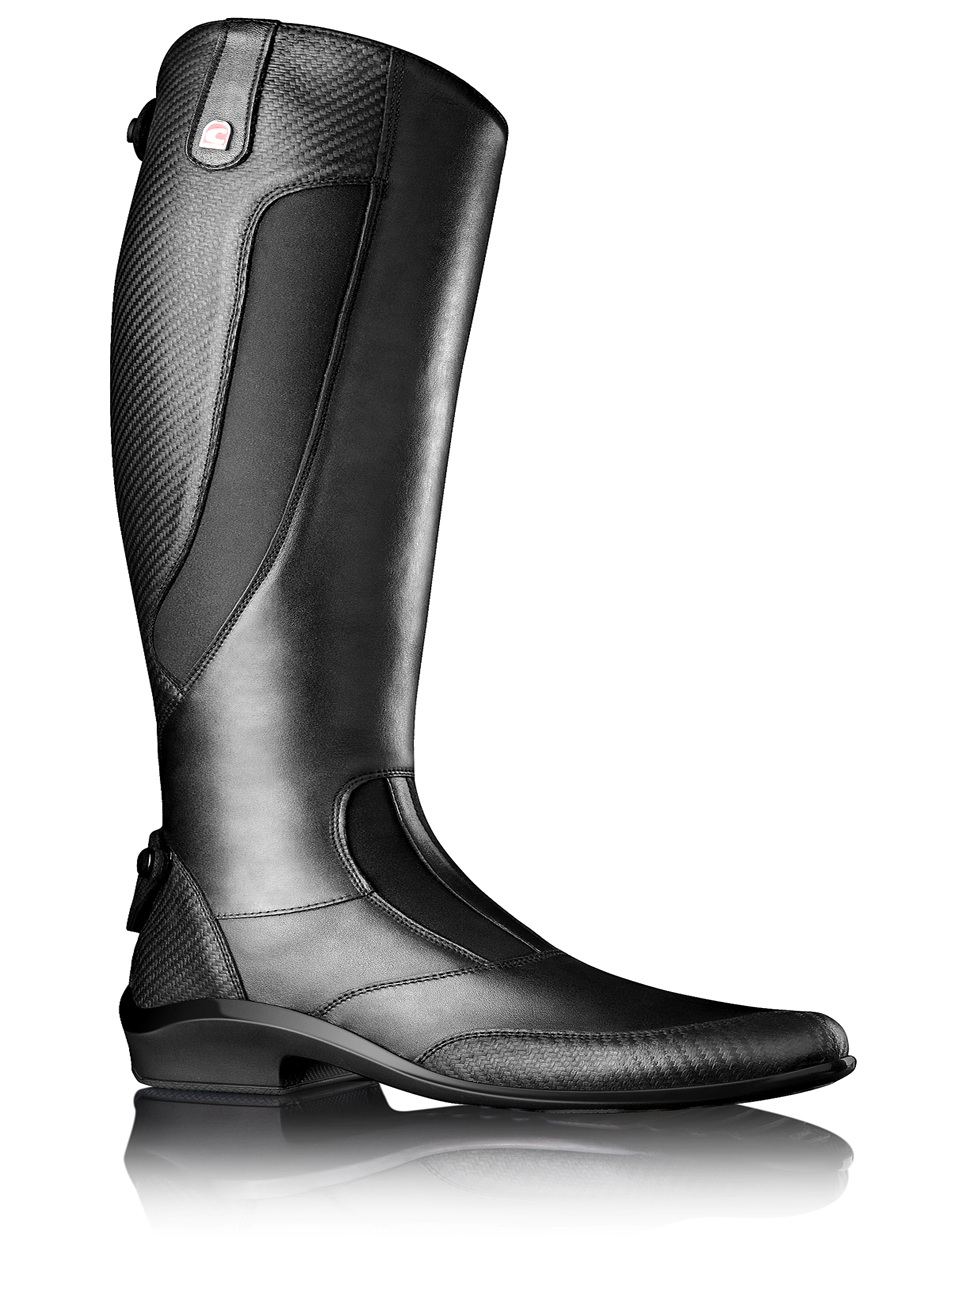 Cavallo - Carbon Boot